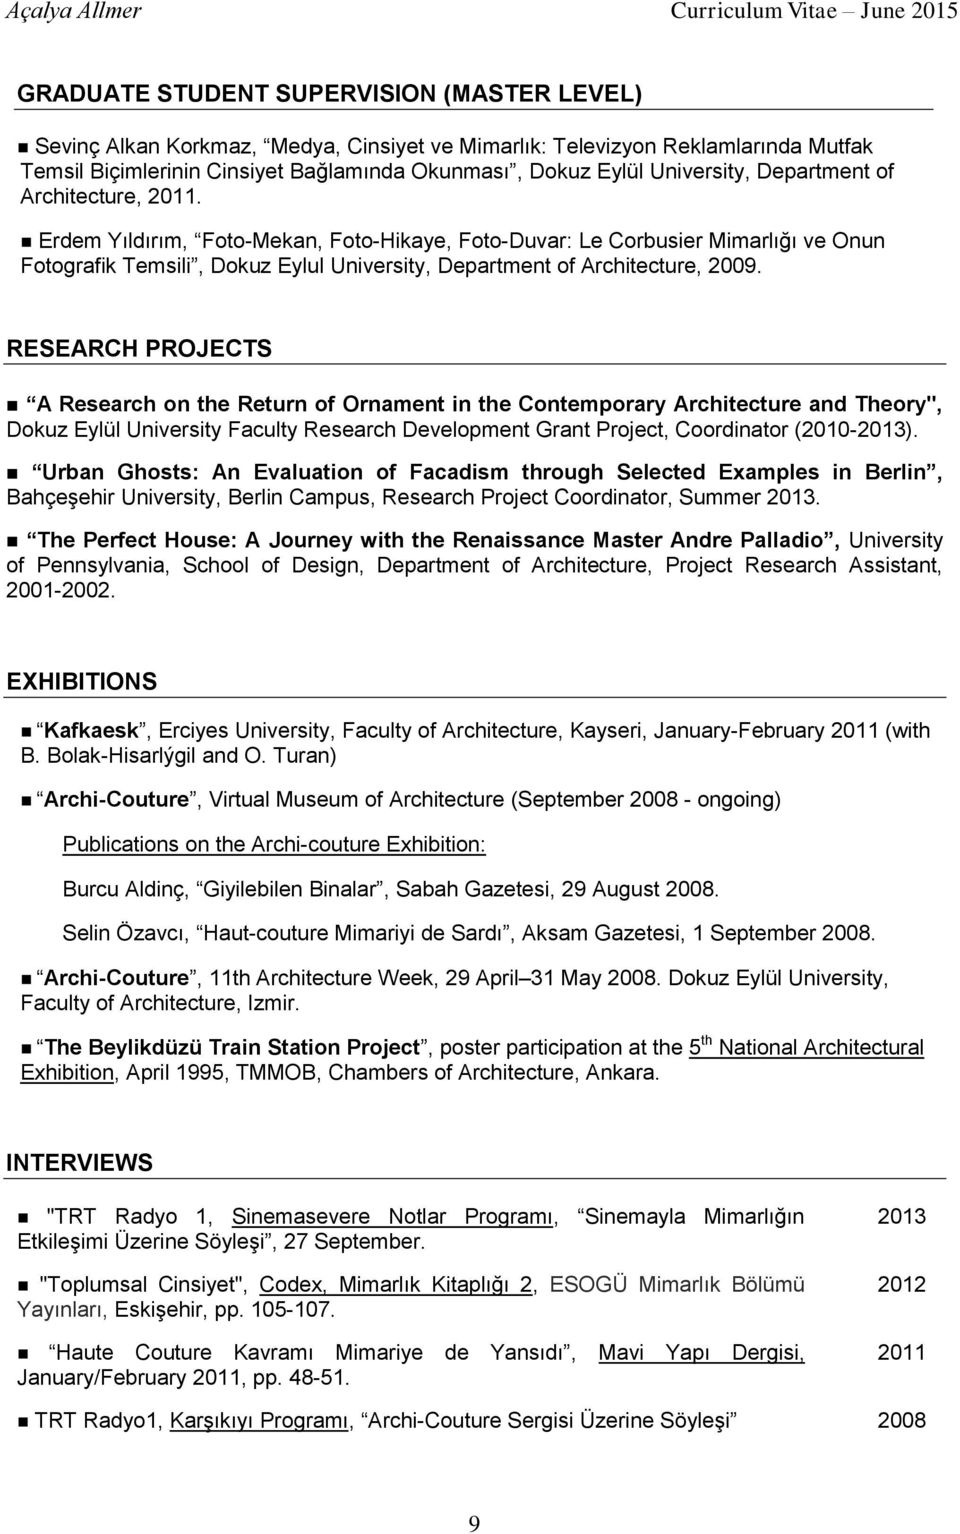 "RESEARCH PROJECTS A Research on the Return of Ornament in the Contemporary Architecture and Theory"", Dokuz Eylül University Faculty Research Development Grant Project, Coordinator (-2013)."